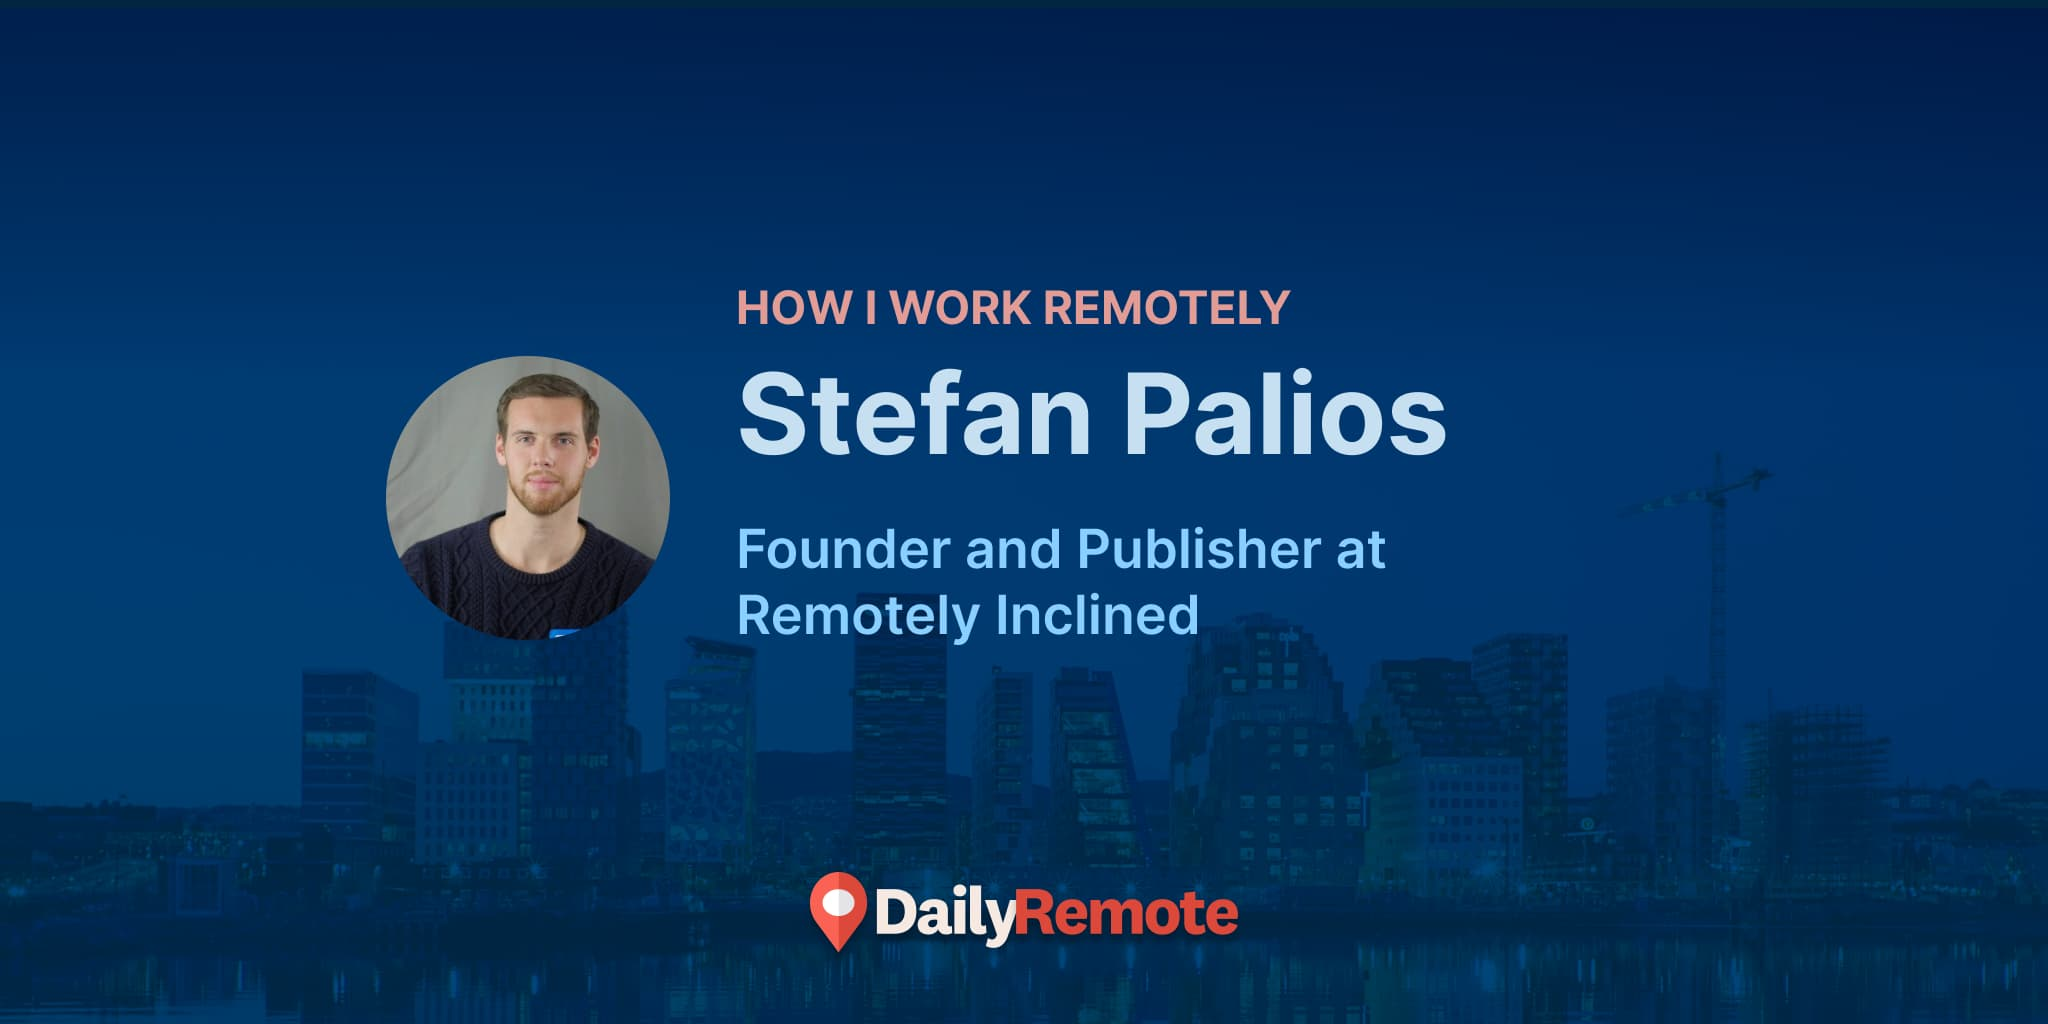 How I Work Remotely: Stefan Palios